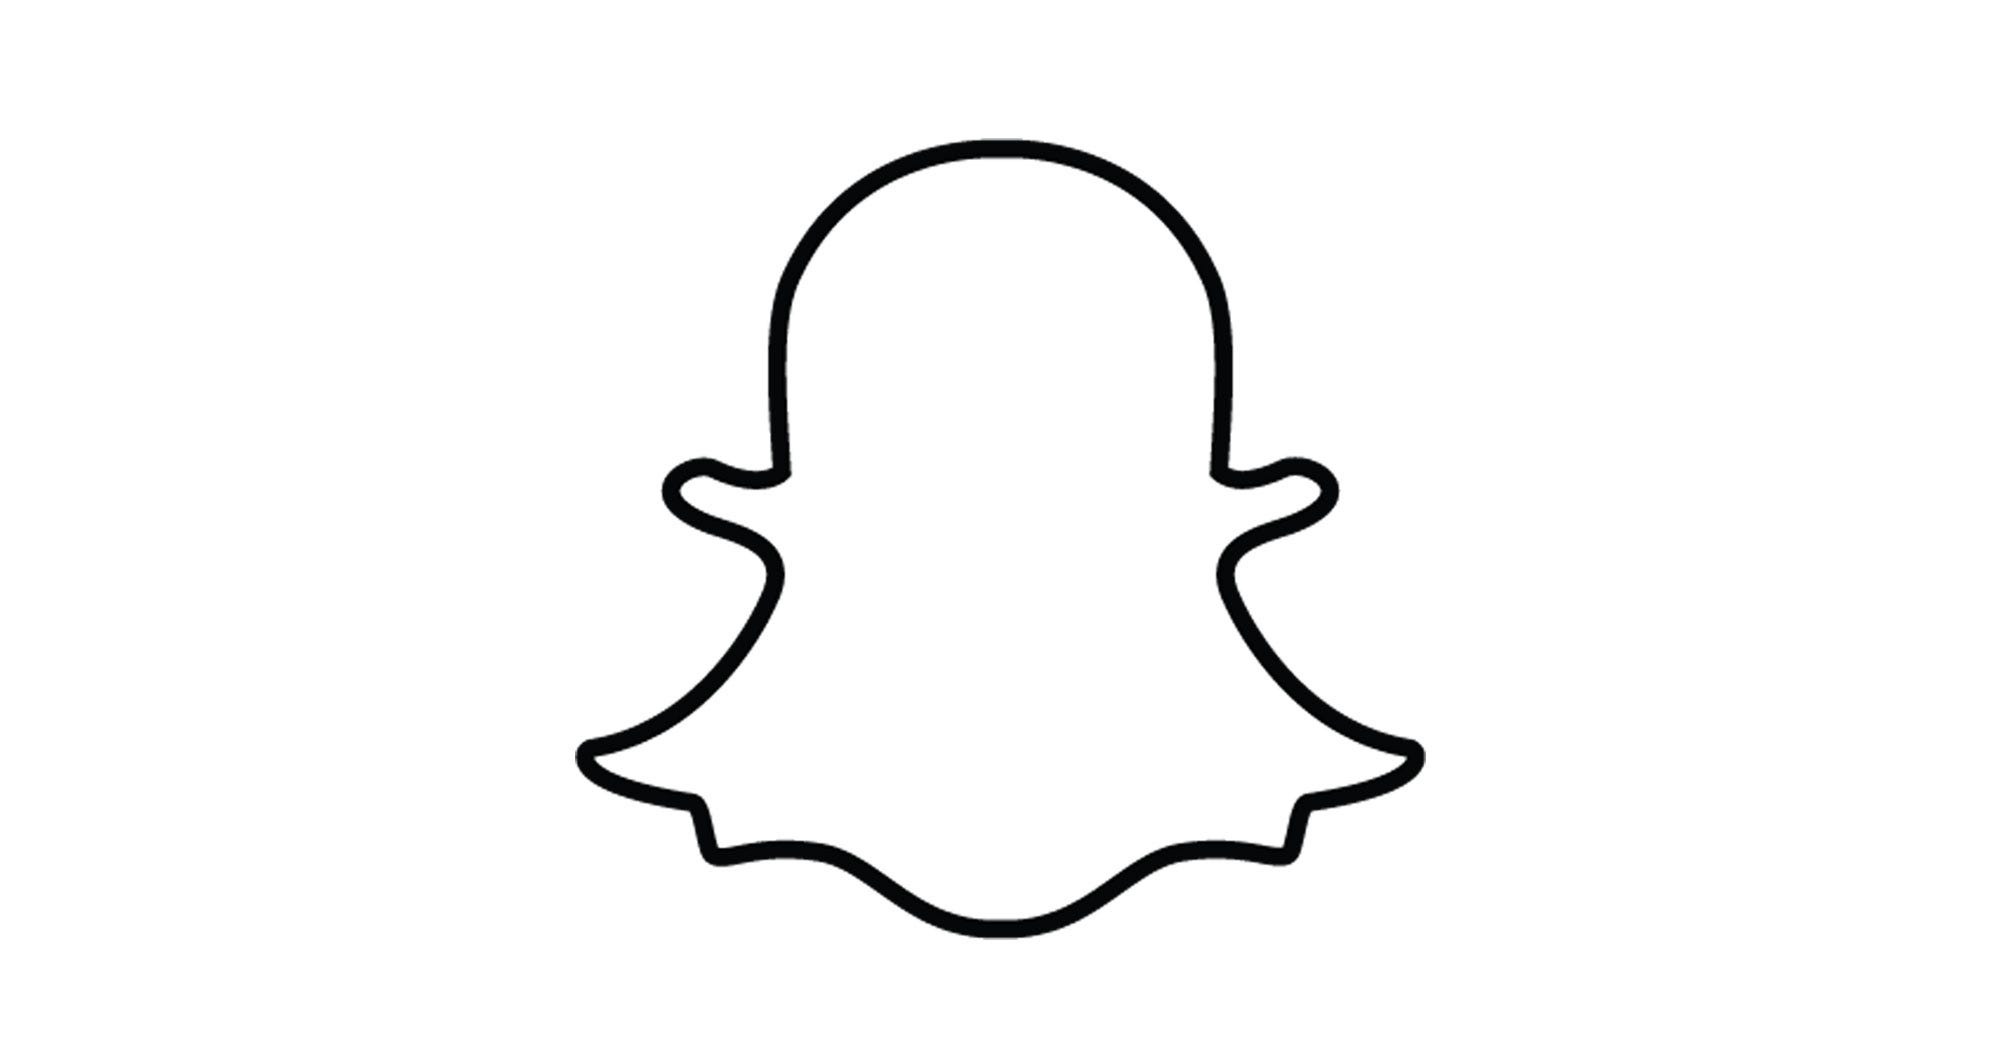 snapchat hidden filters app features secret hacks